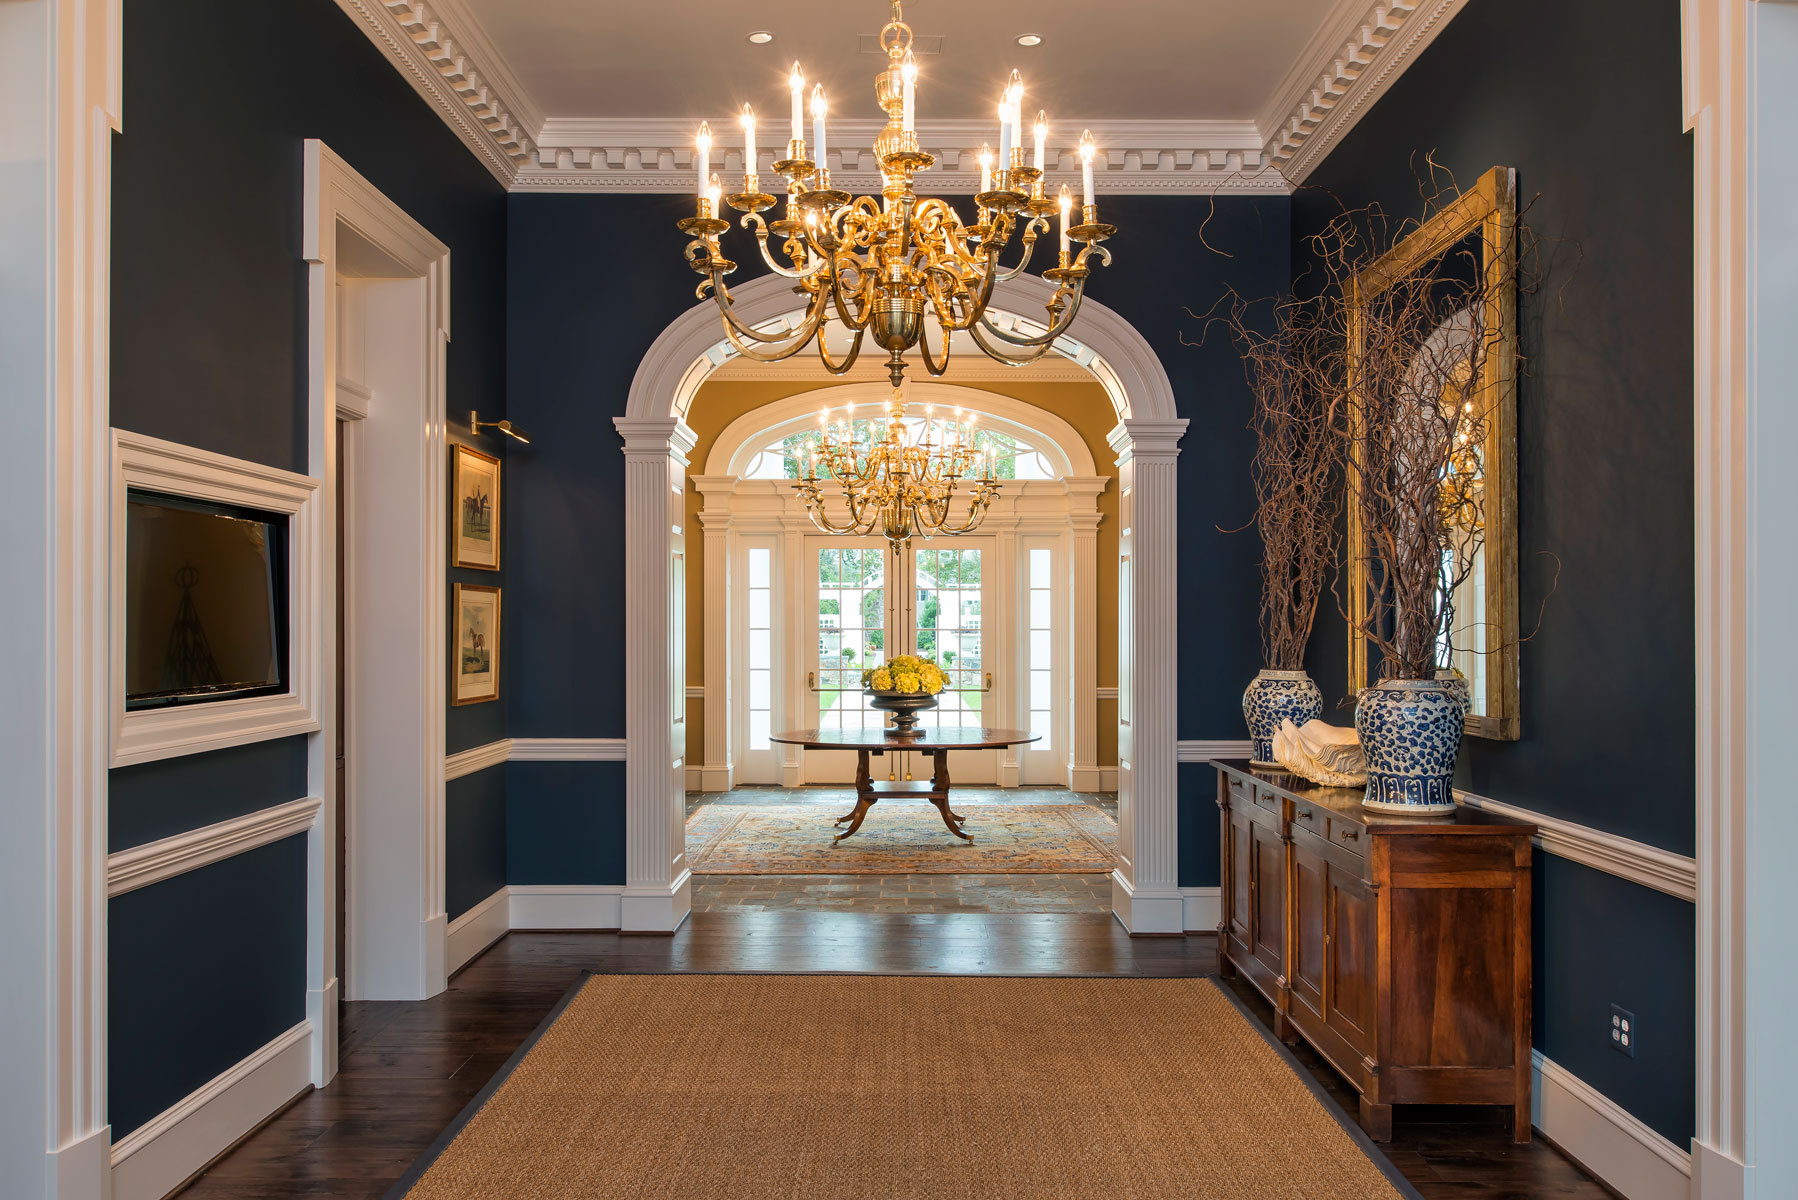 The Sycamore House at WillowsfordInterior Design: Marlene DennisArchitects: Rust Orling